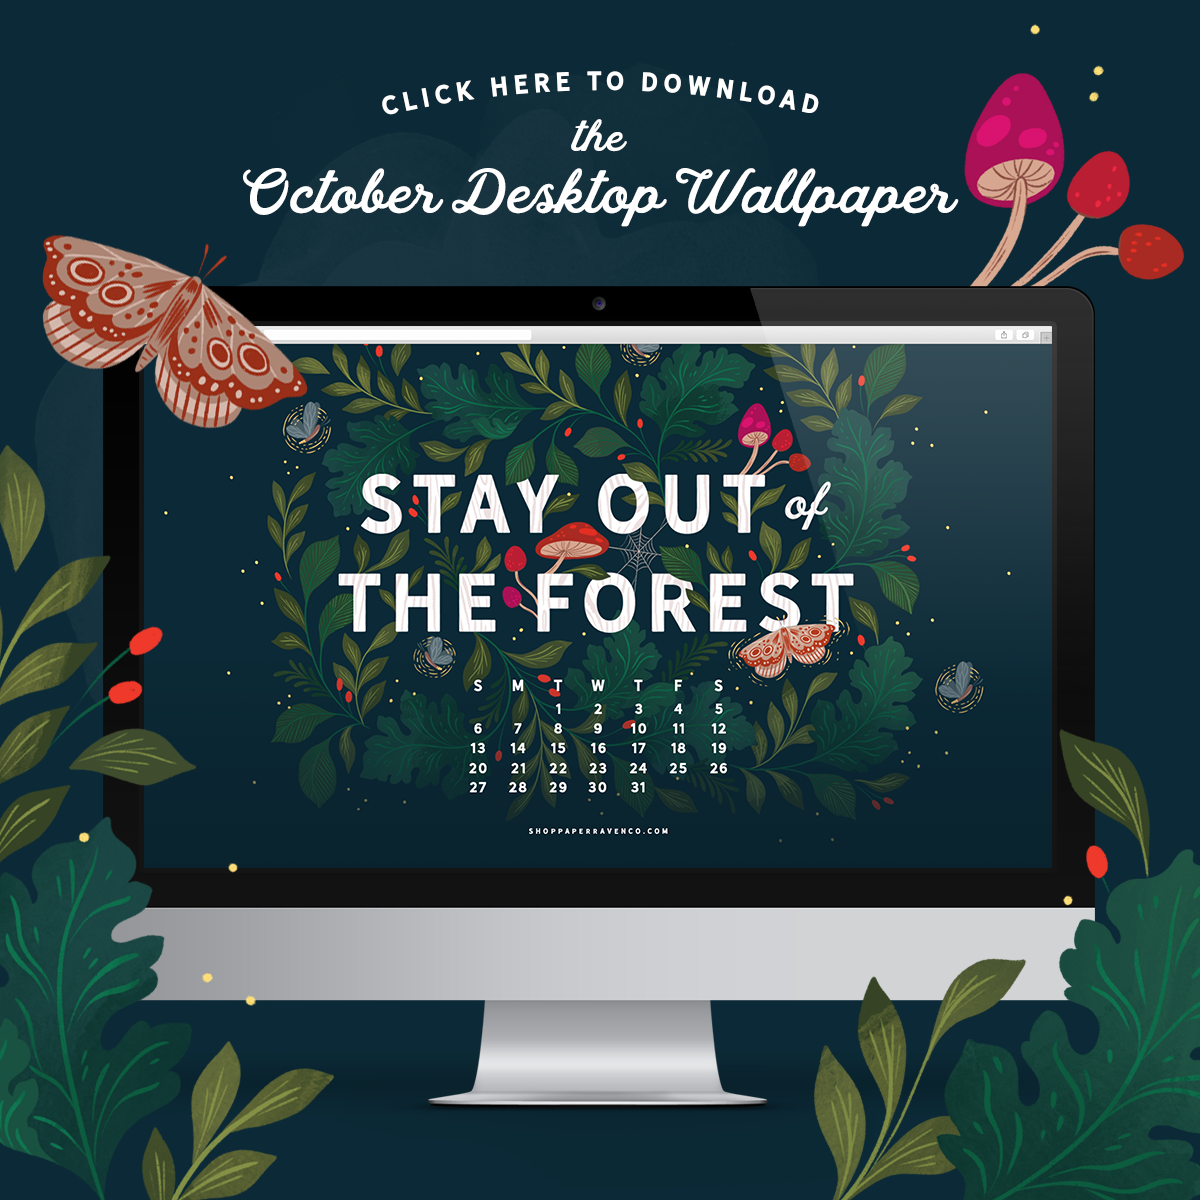 October 2019 Illustrated Desktop Wallpaper by Paper Raven Co. | www.ShopPaperRavenCo.com #dressyourtech #desktopwallpaper #desktopdownload